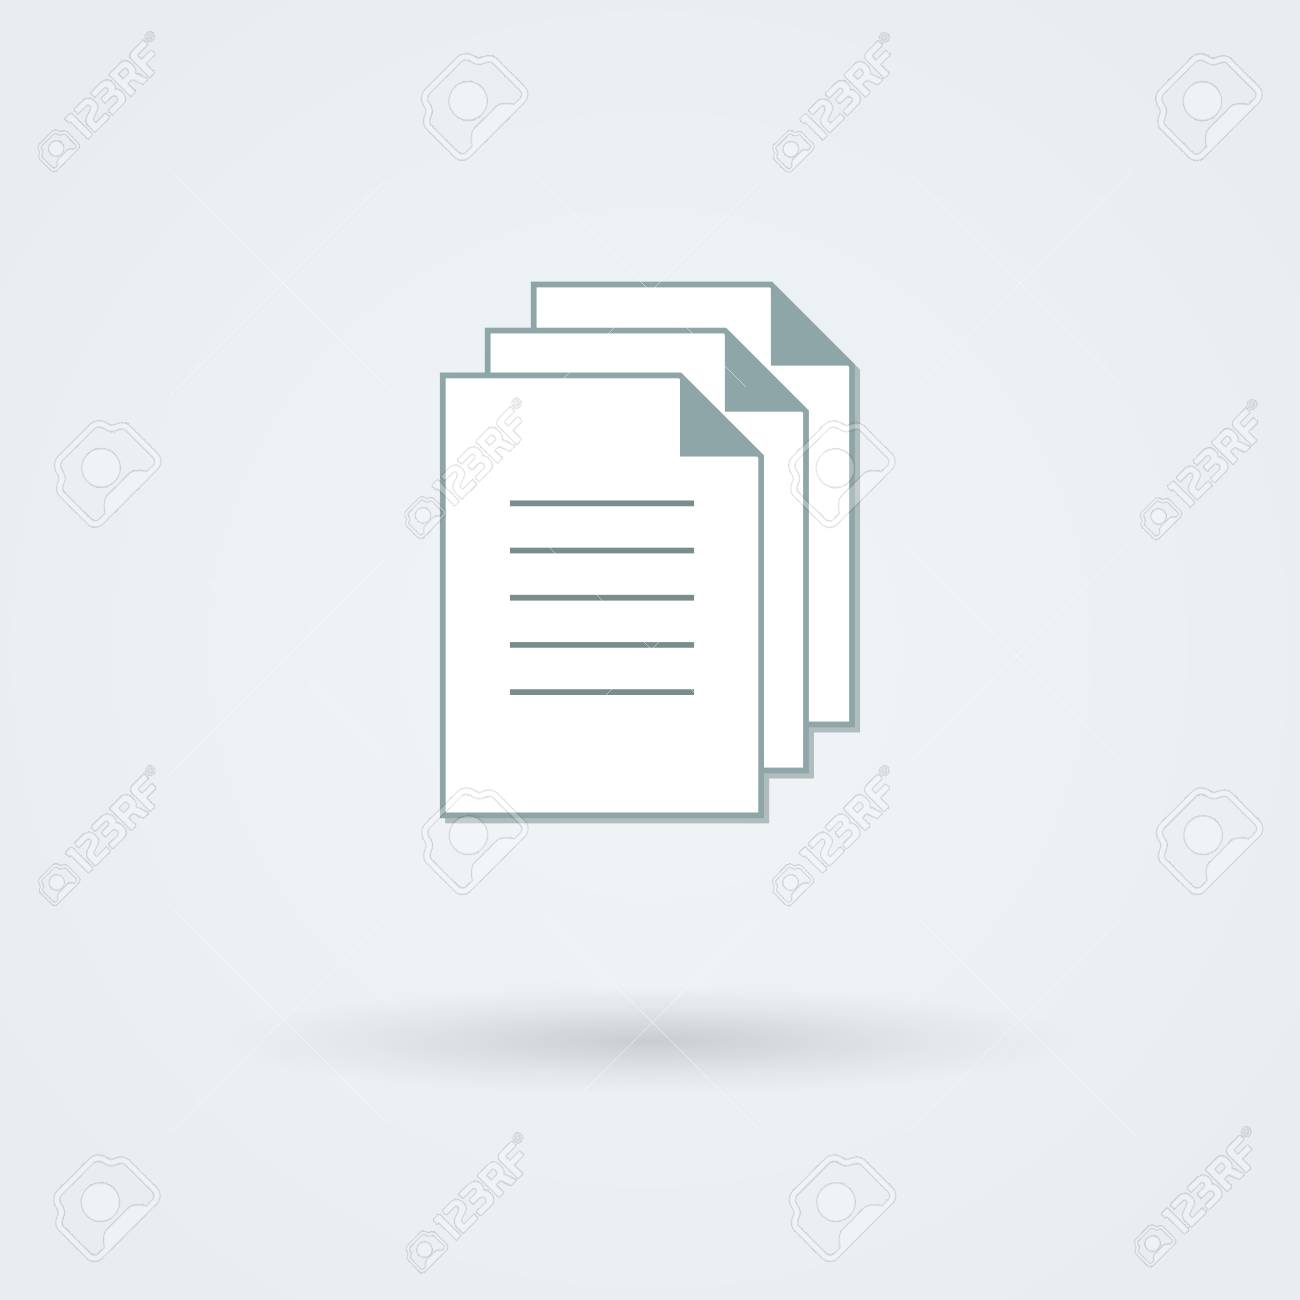 Stack of papers logo pictogram button stock photo picture and logo pictogram button stock photo 50241391 ccuart Image collections